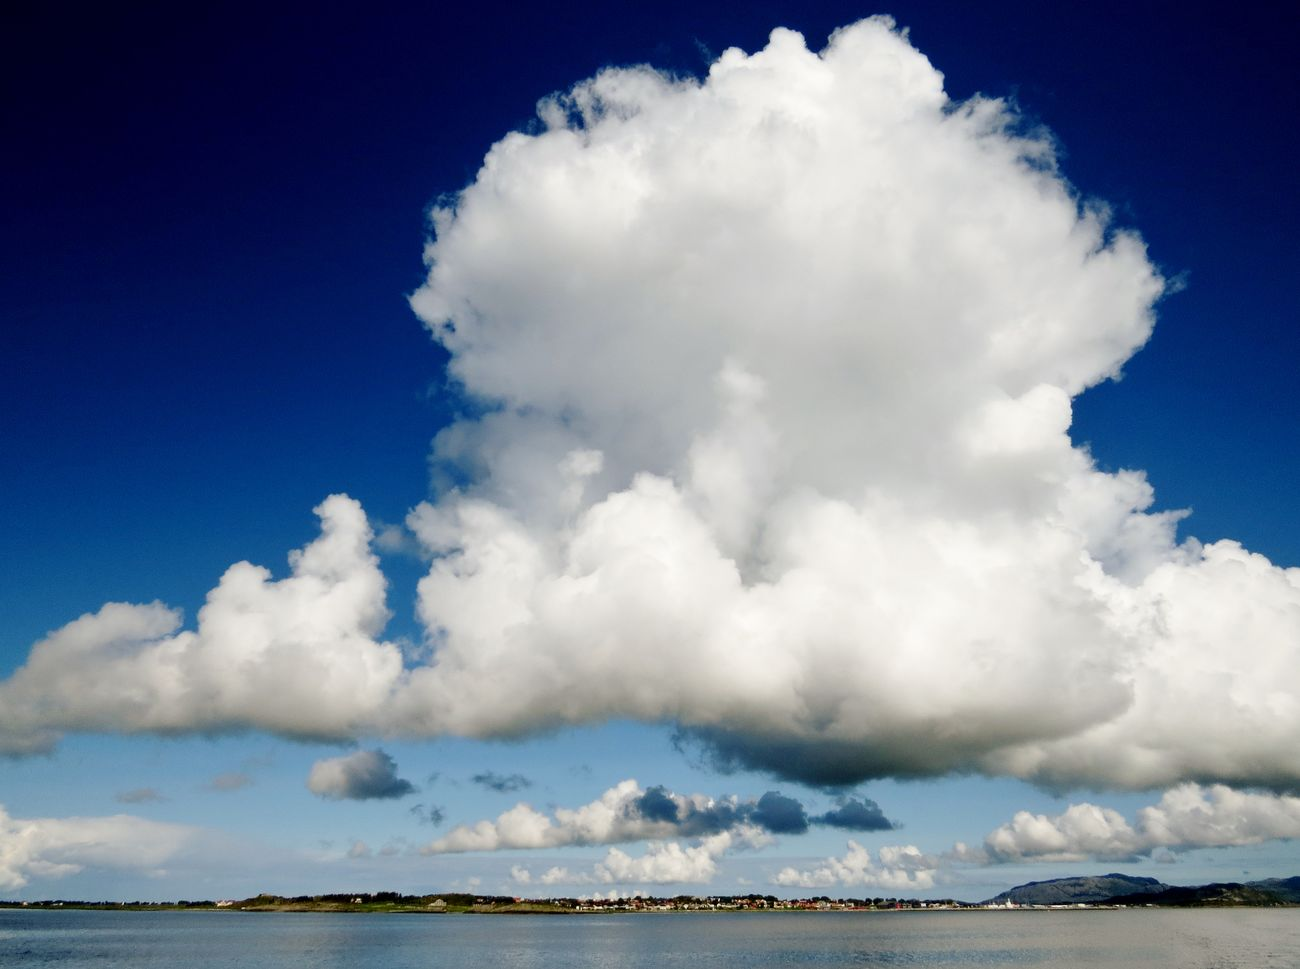 Beauty In Nature Big Clouds Blue Brekstad CENTRAL NORWAY Cloud - Sky Clouds And Sky Cloudscape Coast Line  Coastal Life Coastal_collection Coastline Coastline Landscape Day Nature Norway Outdoors Scenics Sea Sky Tranquility Water